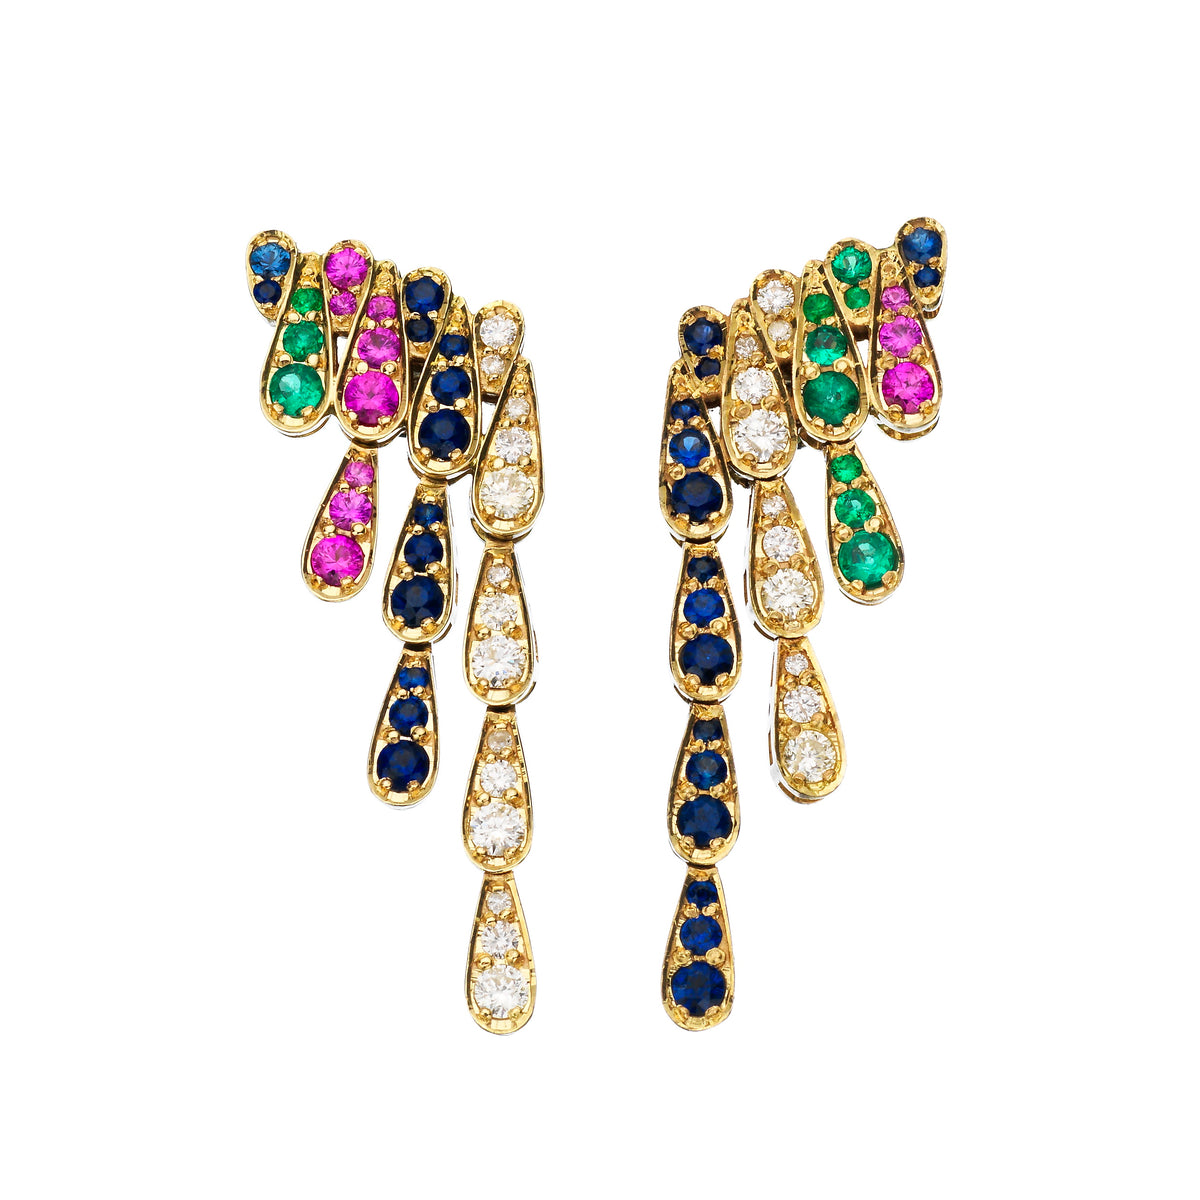 Earrings in white gold set with diamonds, emeralds, blue and pink sapphires